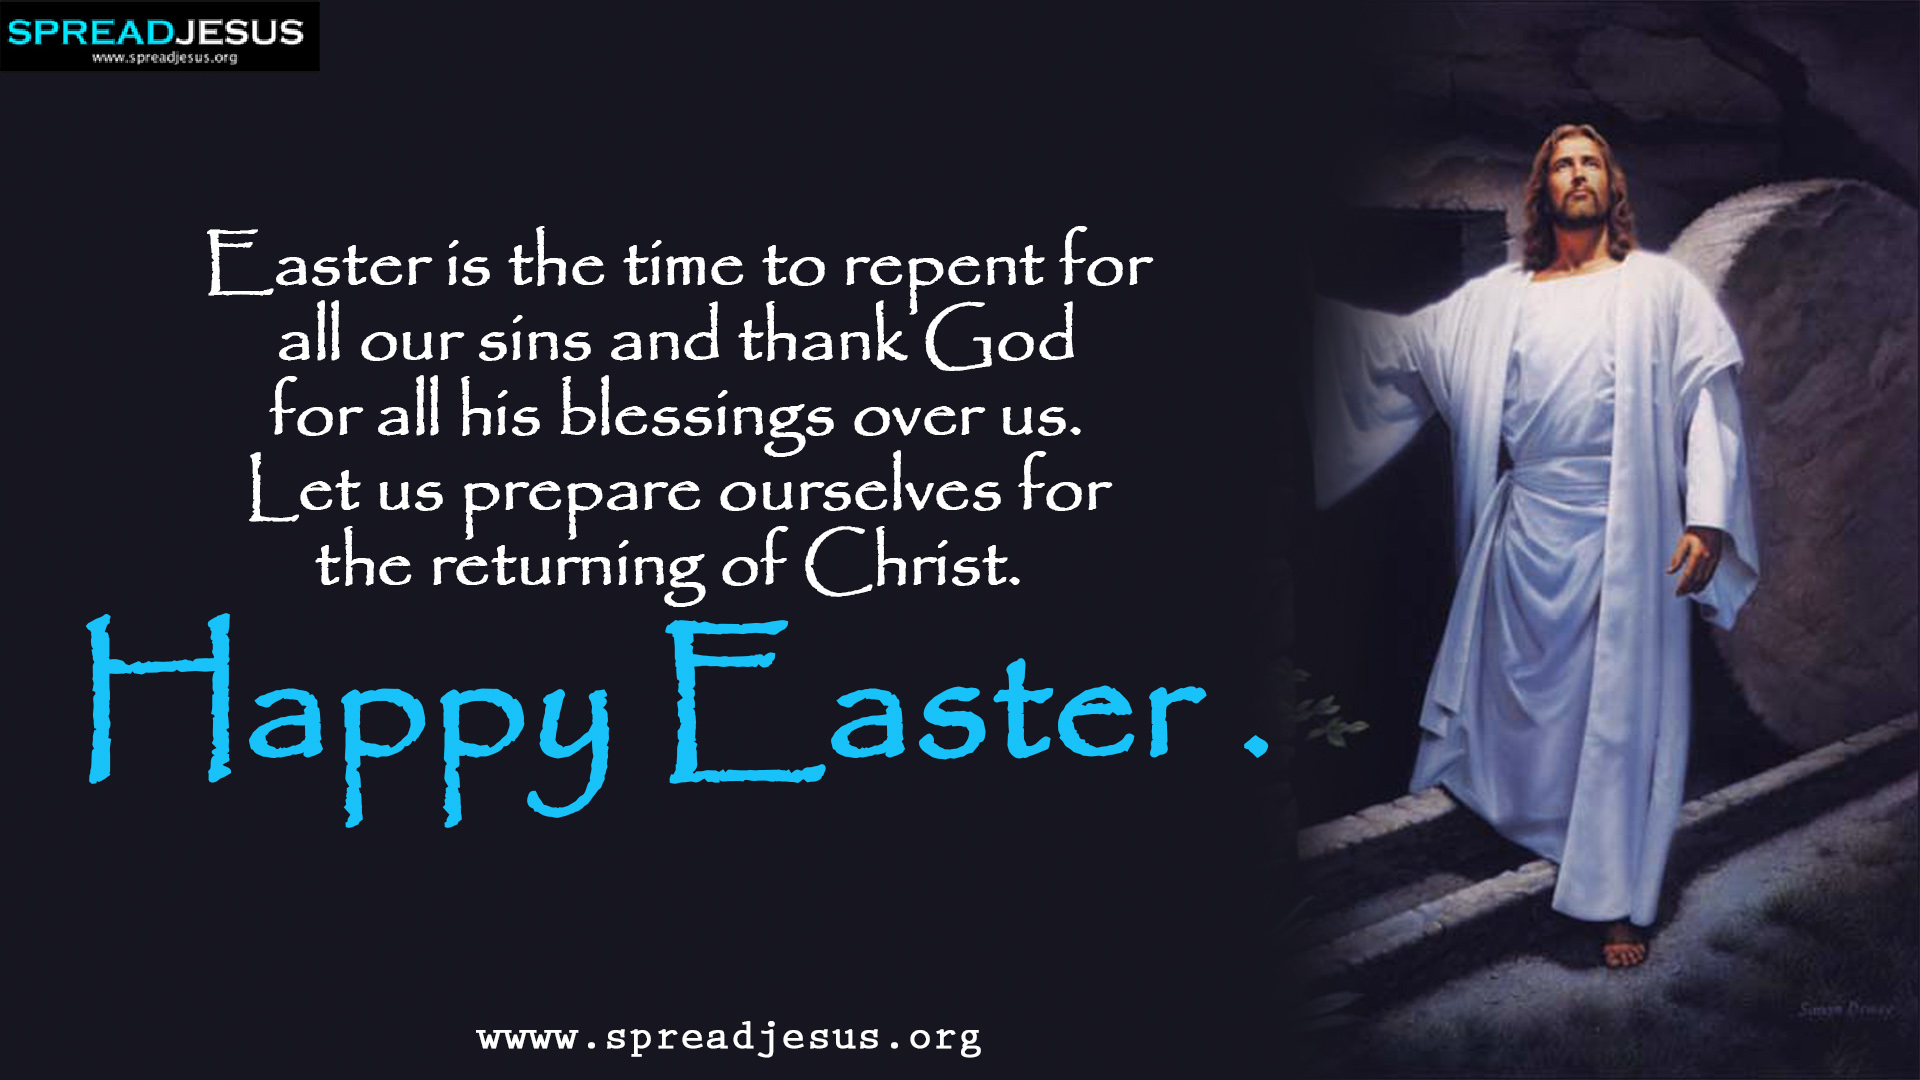 Happy Easter HD Wallpapers Easter is the time to repent for all our sins and thank God for all his blessings over us. Let us prepare ourselves for the returning of Christ. Happy Easter to you